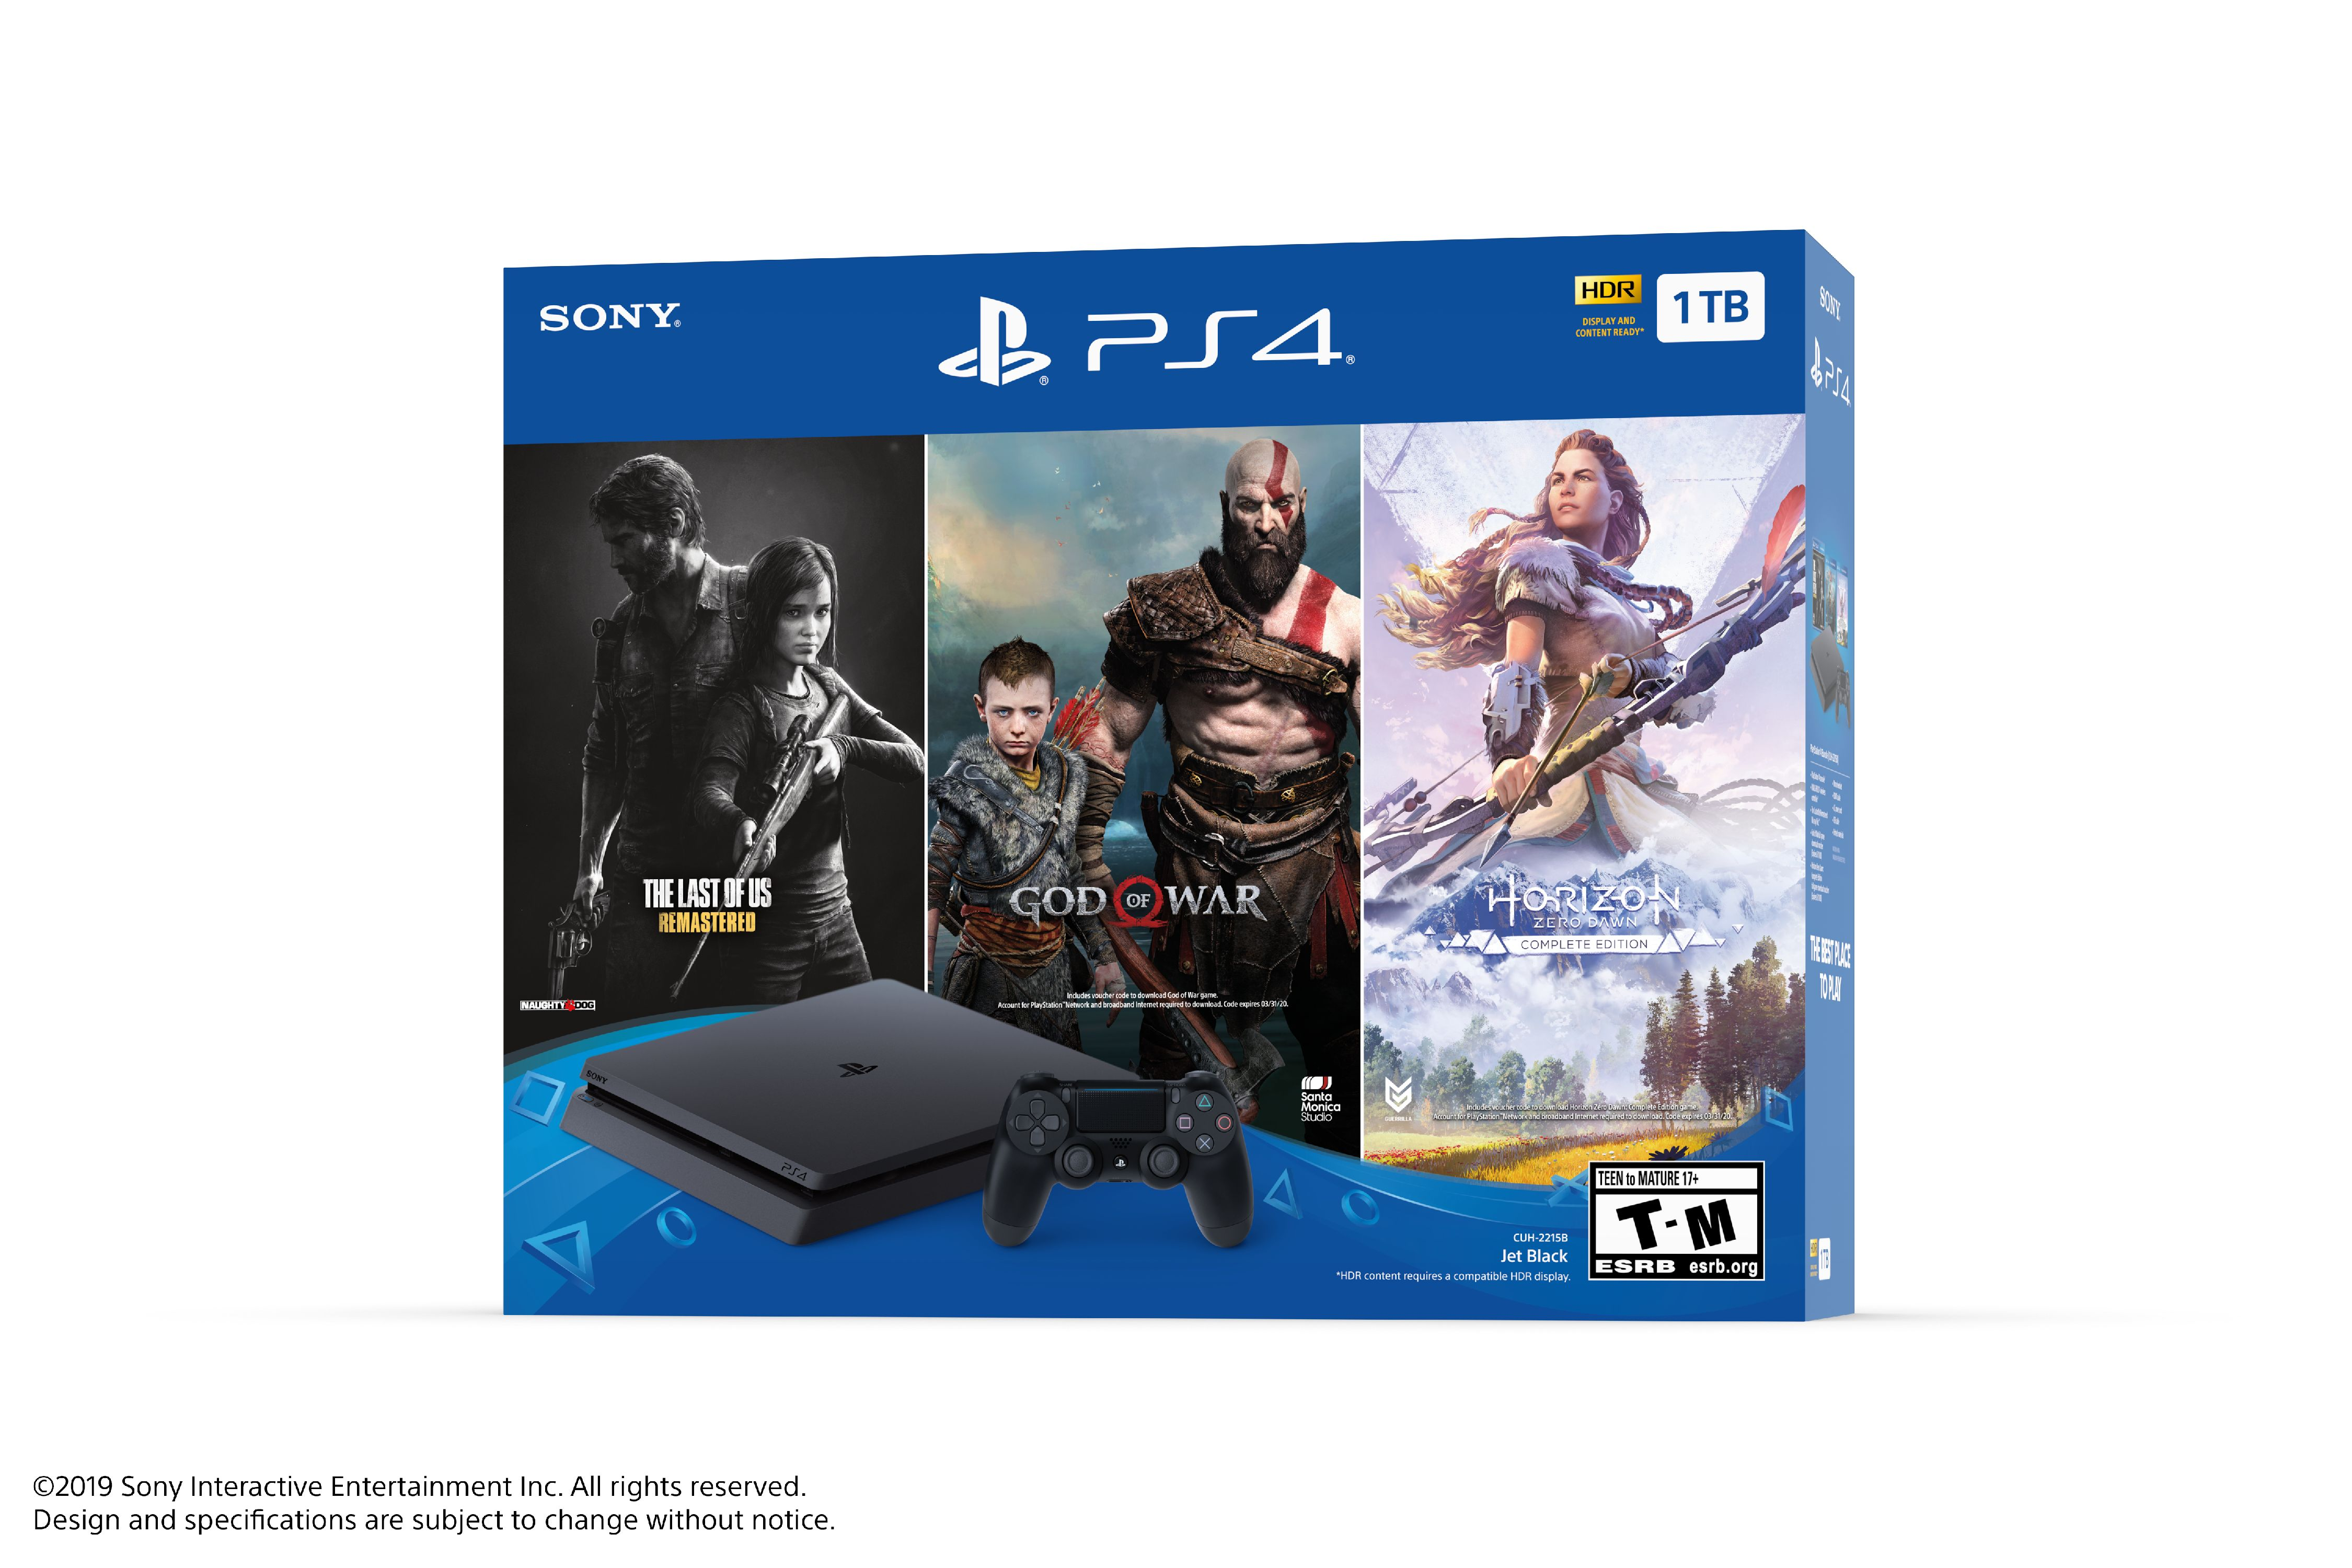 Sony Playstation Slim 4 1tb Only On Playstation Ps4 Console Bundle